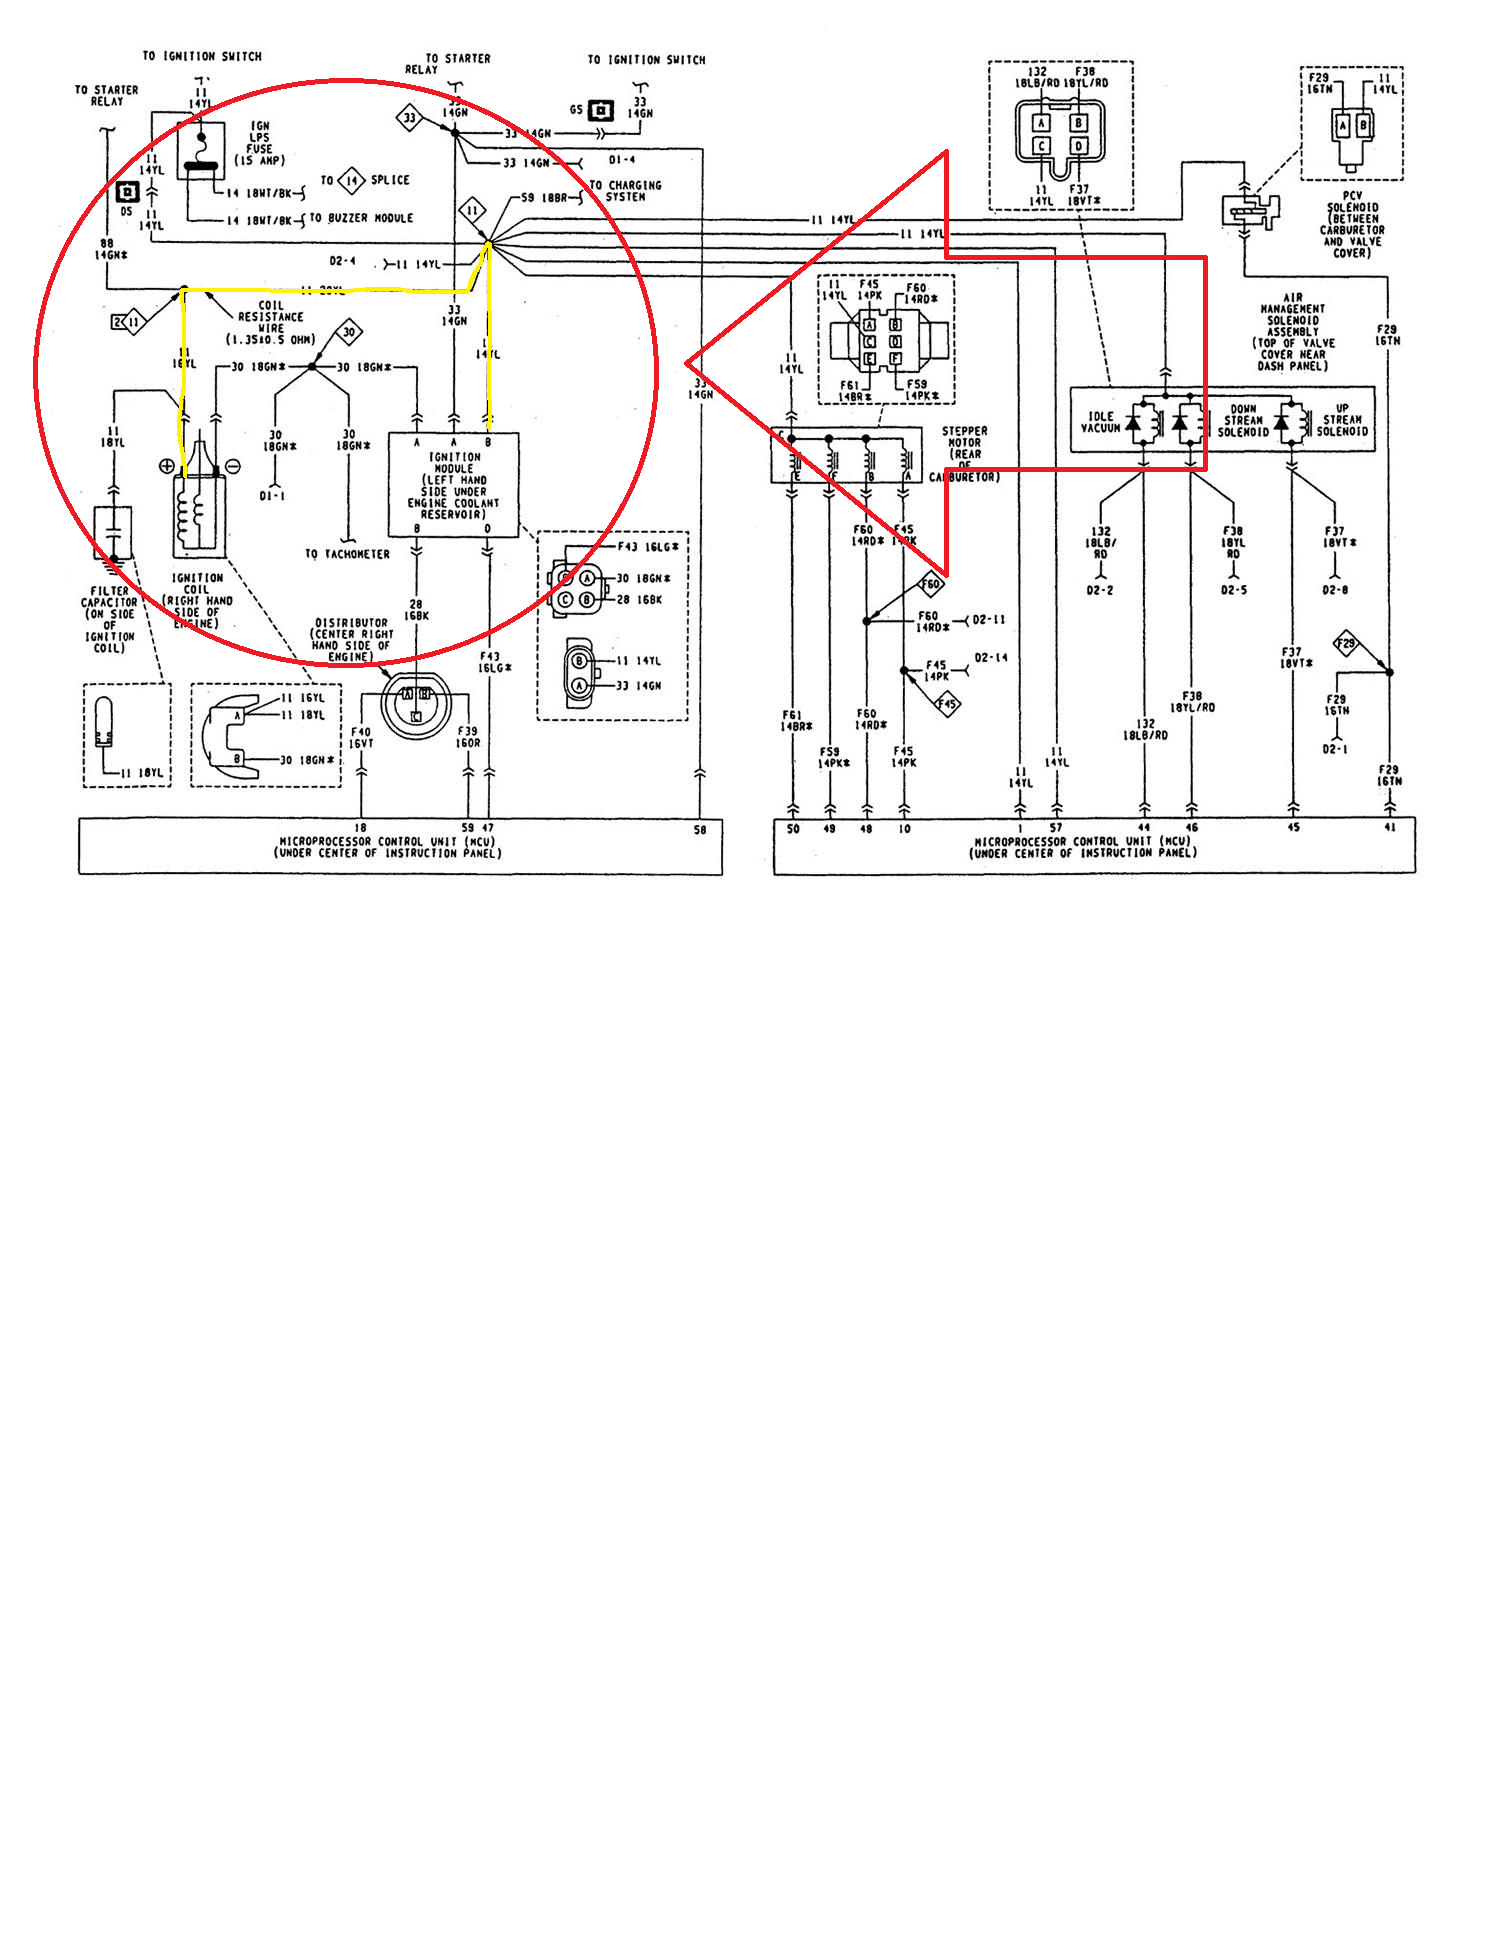 wiring diagram for 2000 jeep wrangler wiring diagram for 1990 jeep wrangler